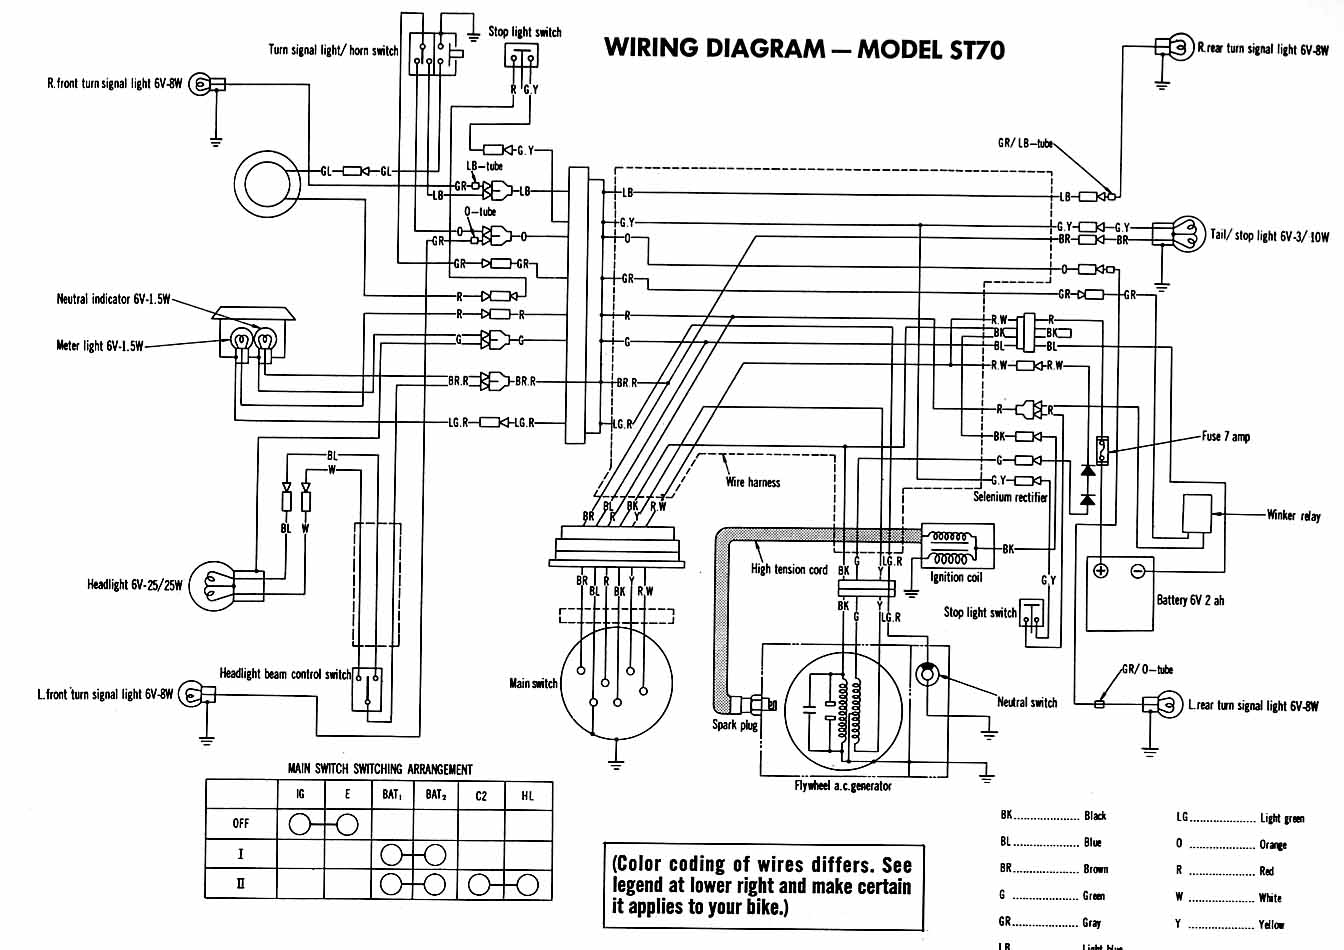 Honda Dax 70 Wiring Diagram Ct70 In Addition 1970 Nsr Clutch Parts Rh Banyan Palace Com Outboard Motor Color